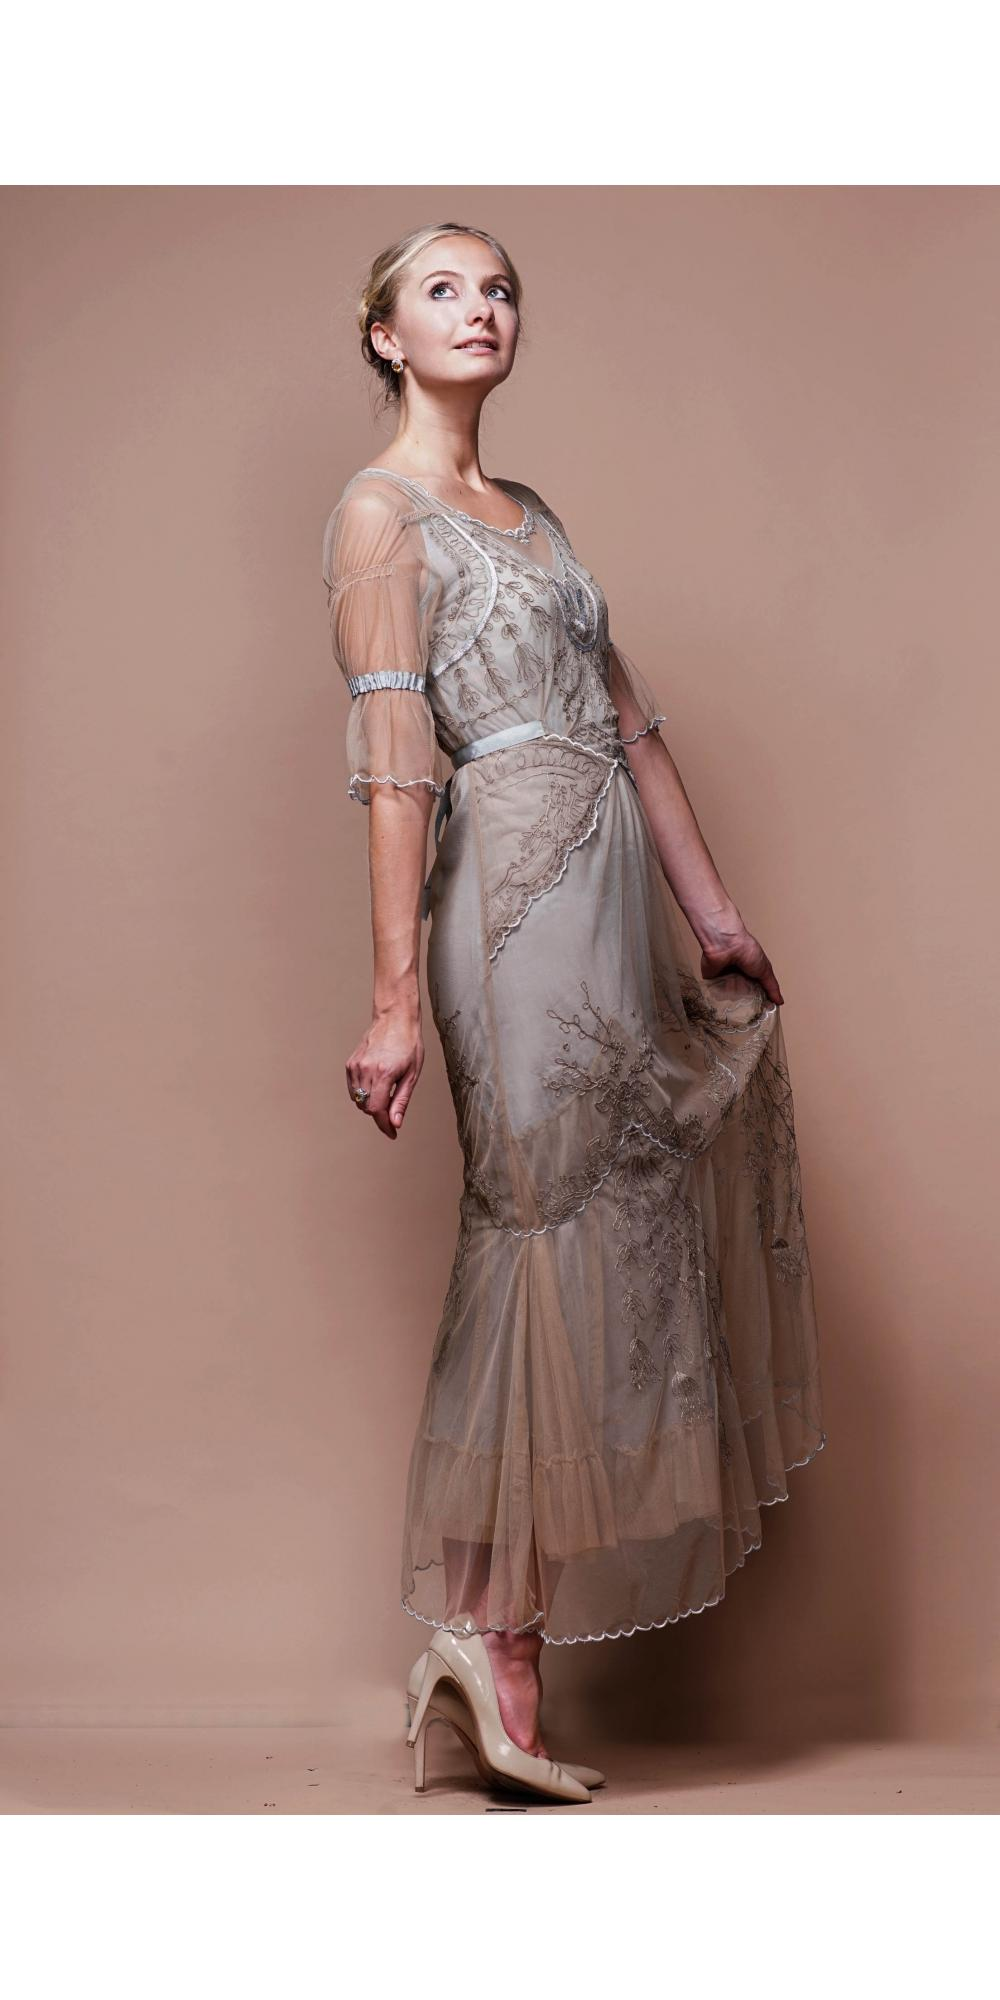 Edwardian Vintage Wedding Dress in Sand/Silver by Nataya - SOLD OUT